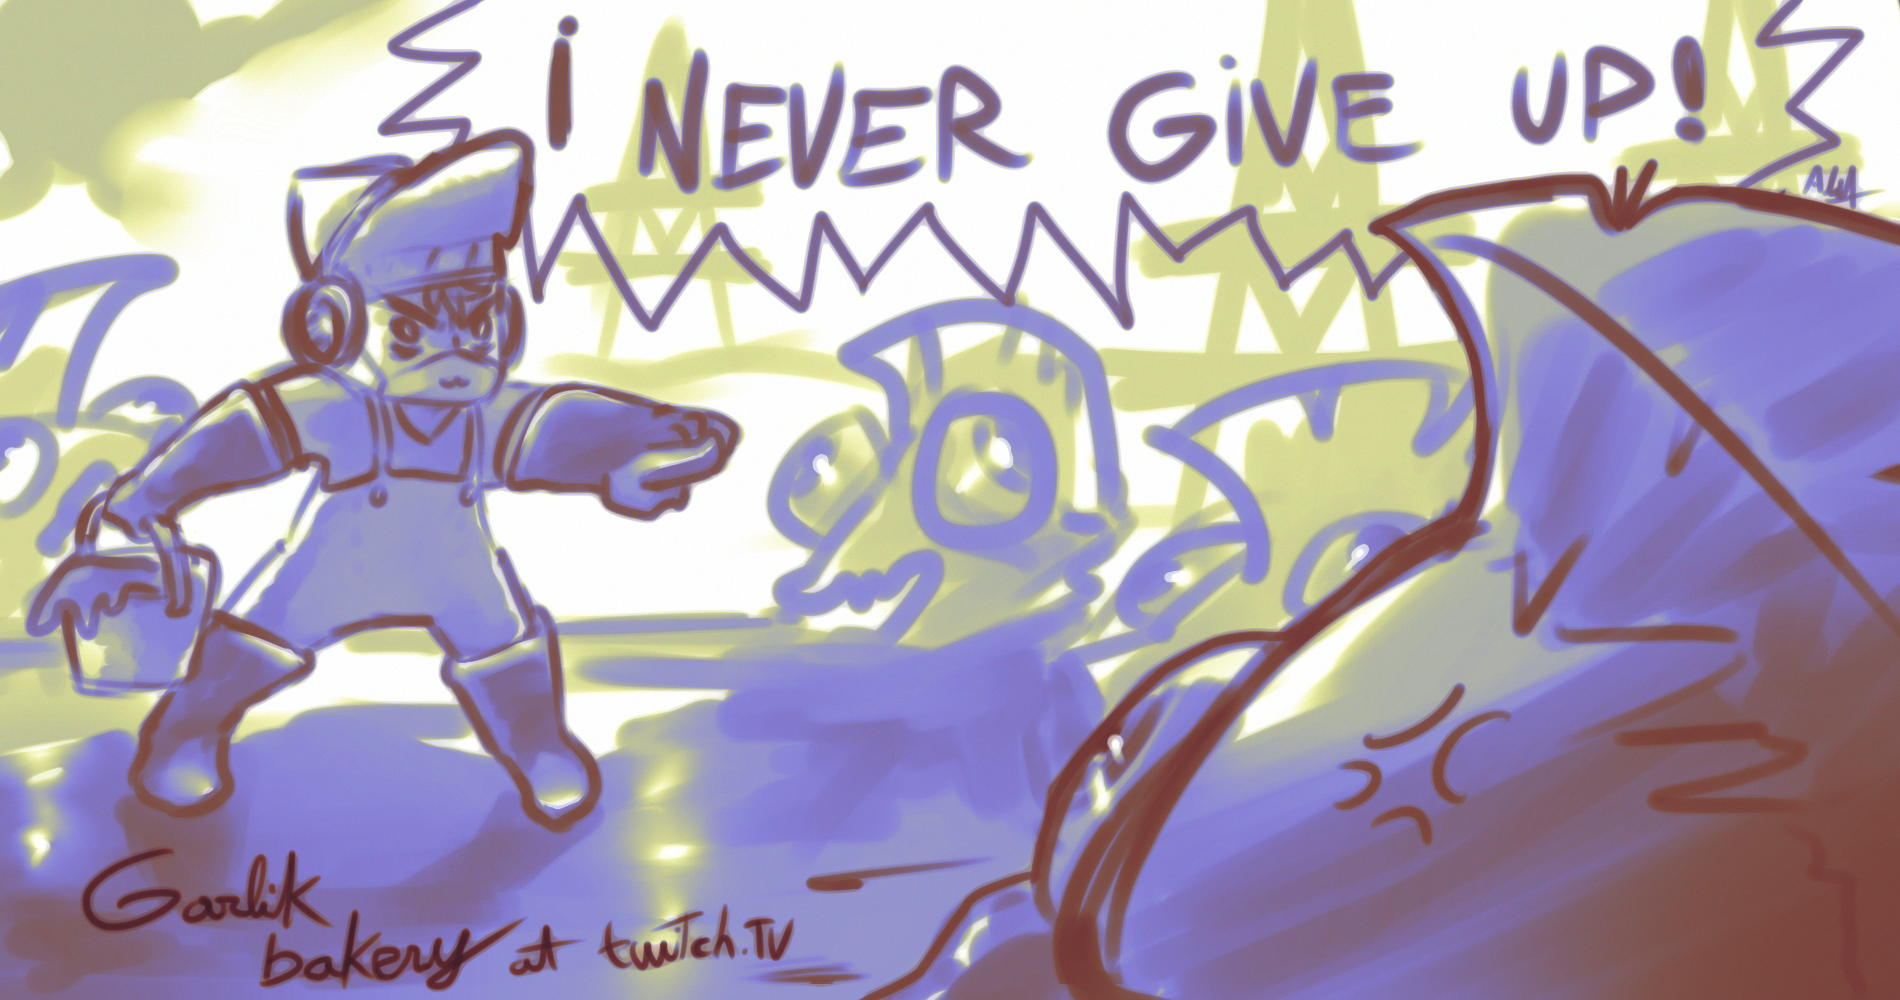 Garlikun never give up